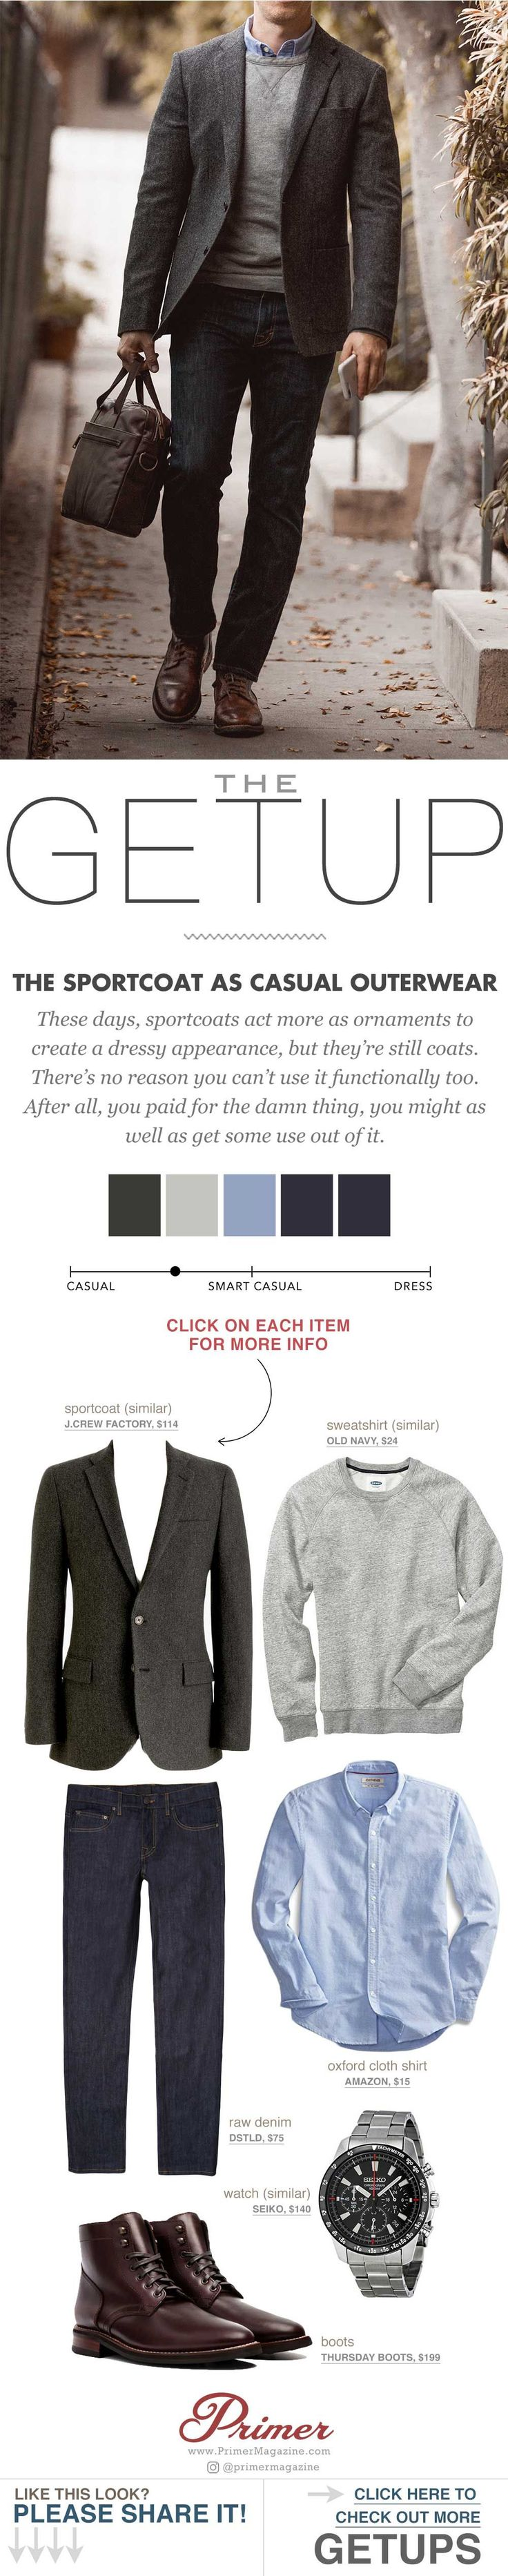 Primer Magazine: Live Action Getup: The Sportcoat as Casual Outerwear #menfashioncasual,